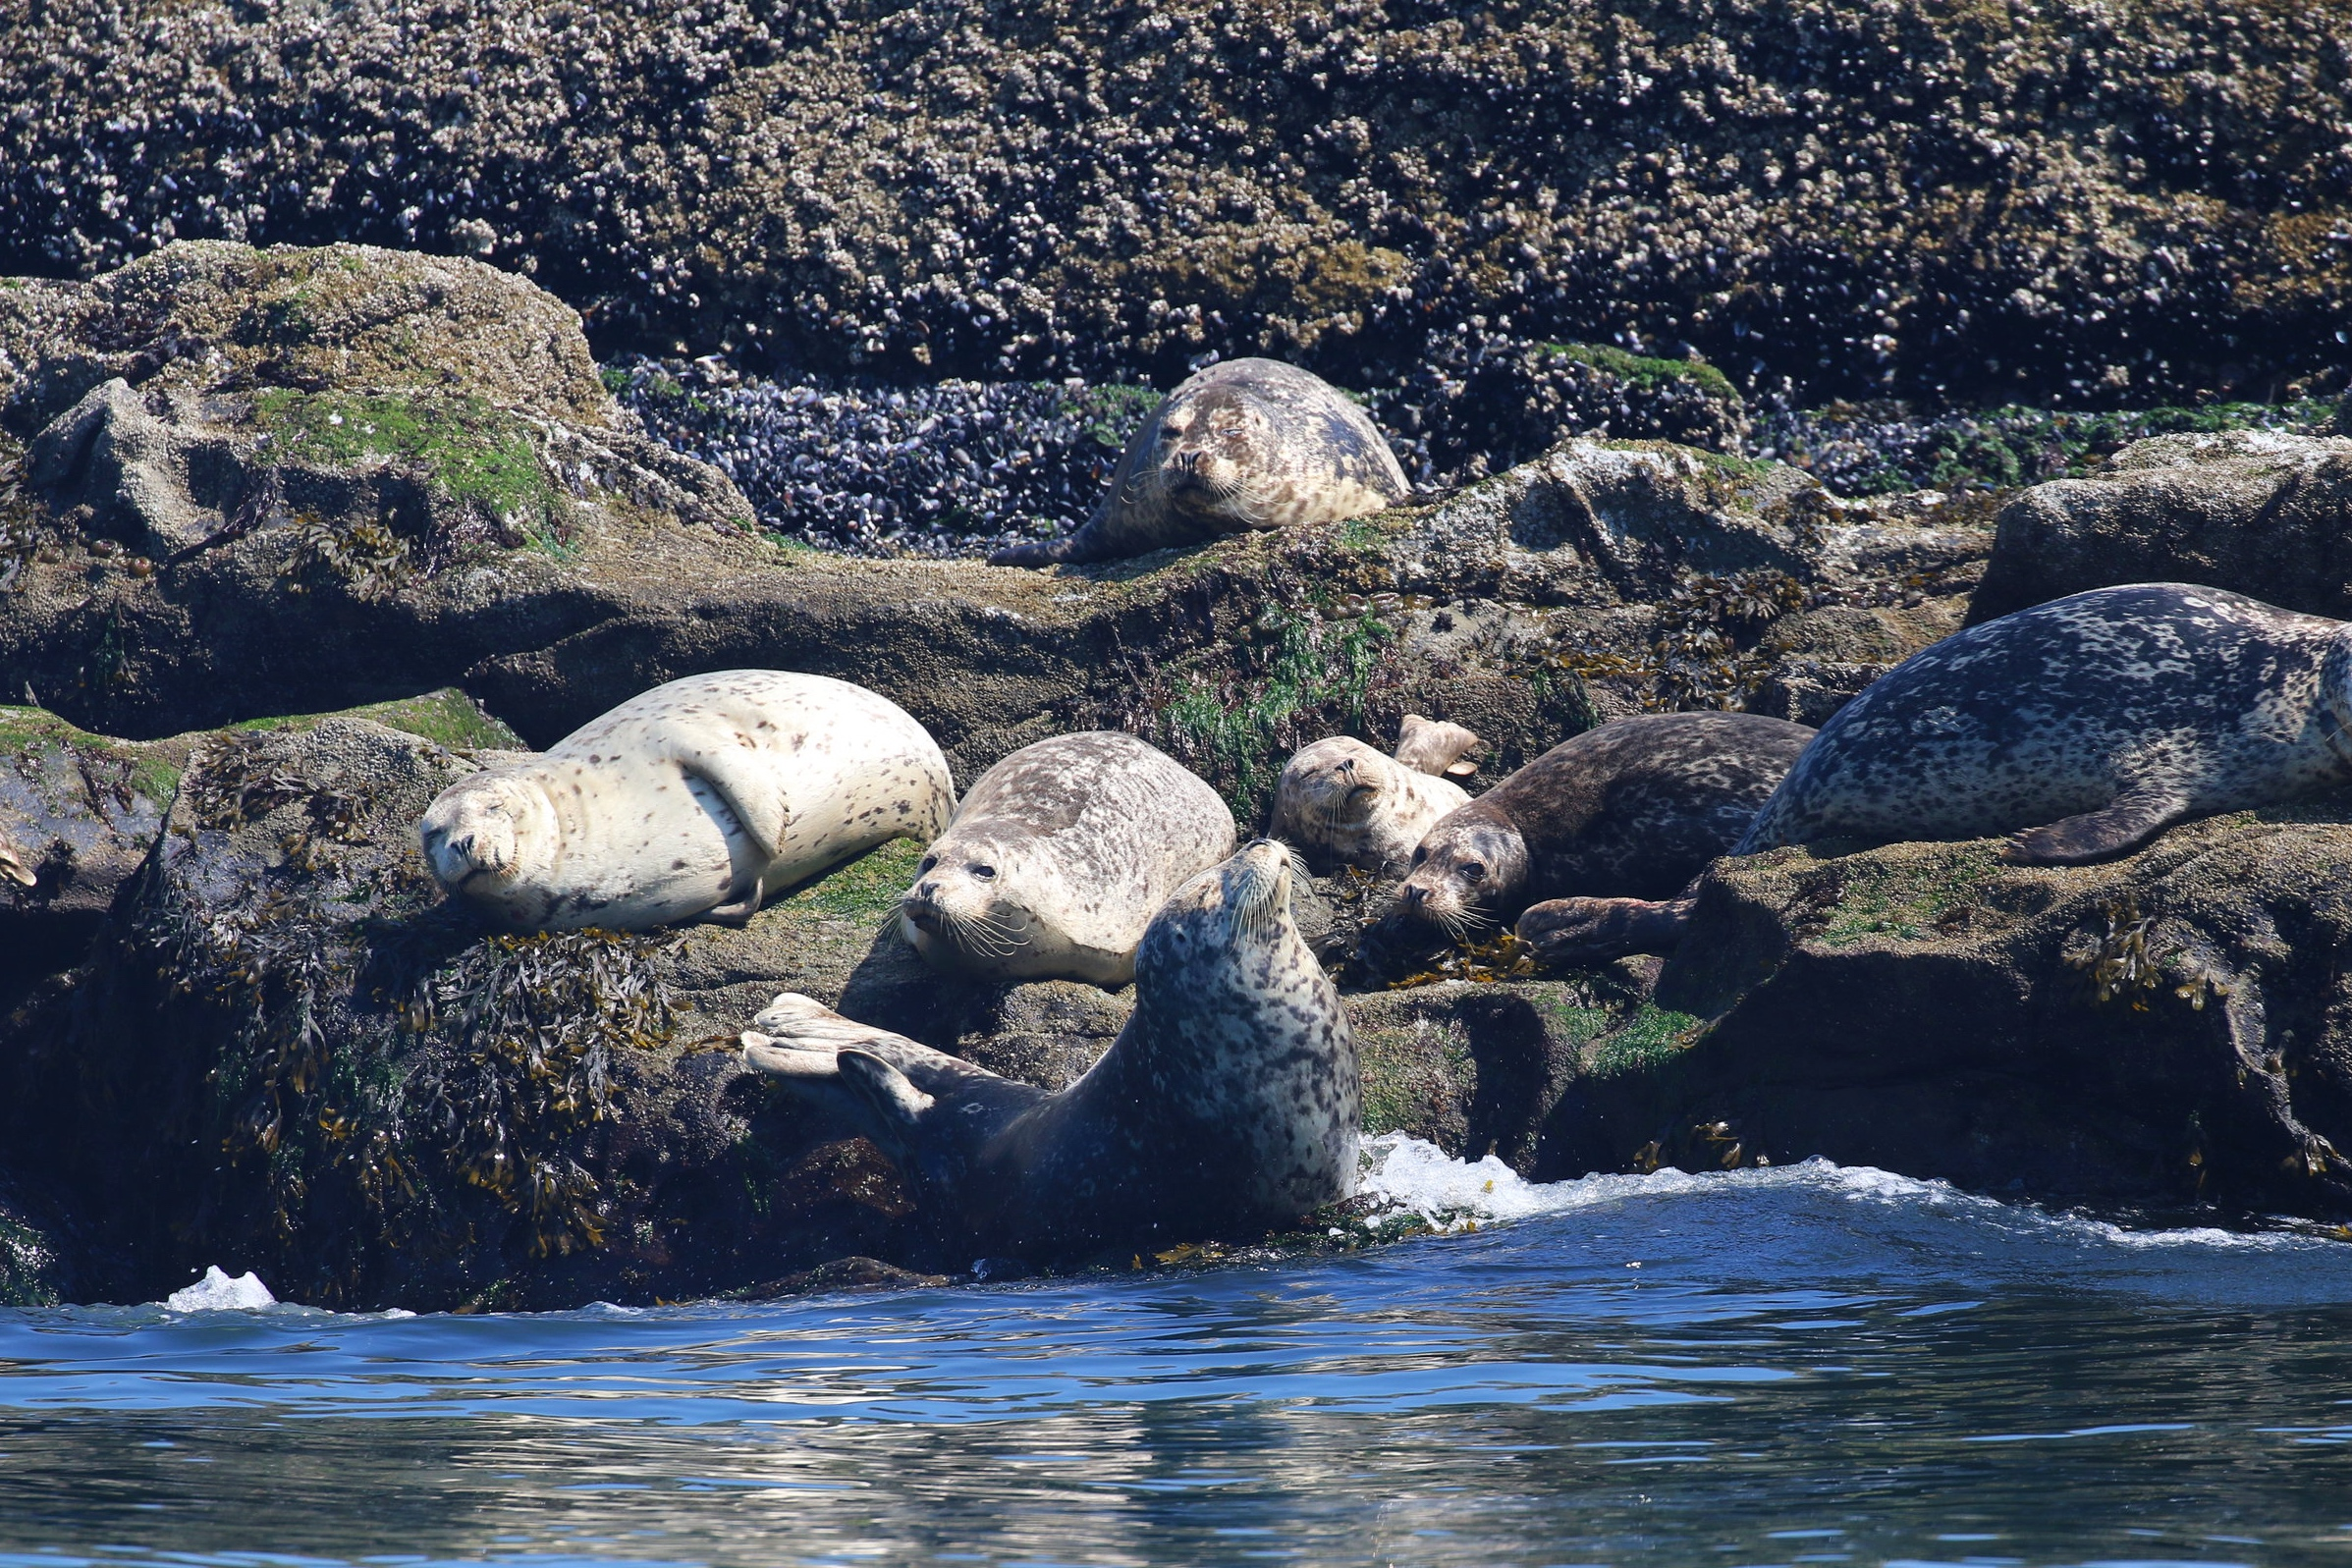 Harbour seals sunning themselves on the rocks, being the glorious rock sausages that they are. Photo by Rebeka Pirker (10:30).